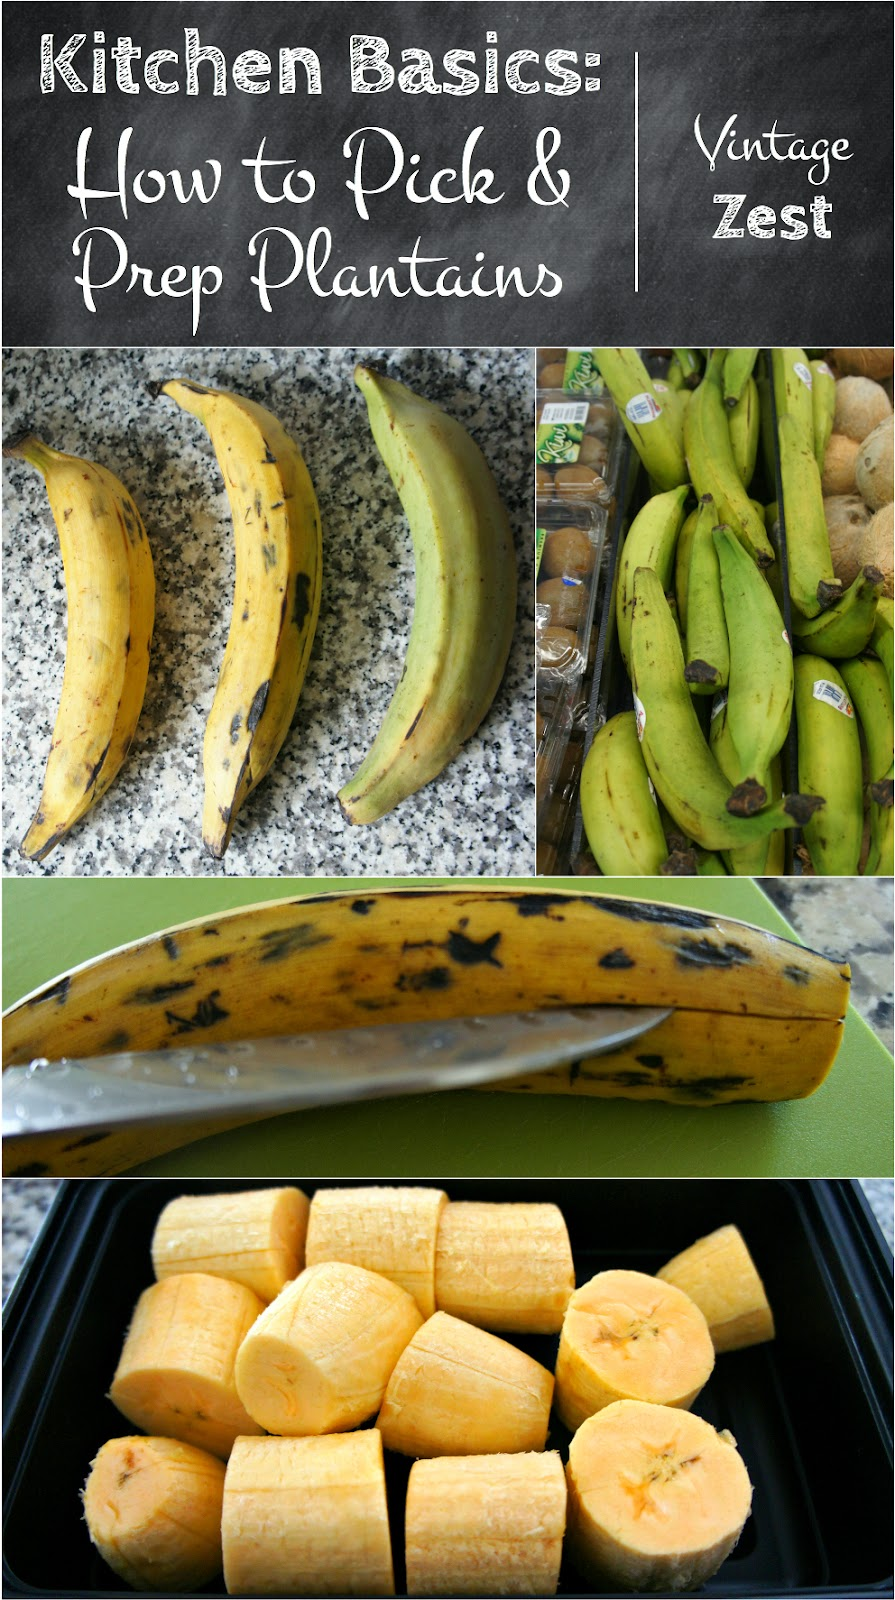 Kitchen Basics: How to Pick & Prep Plantains on Diane's Vintage Zest! #cooking #tip